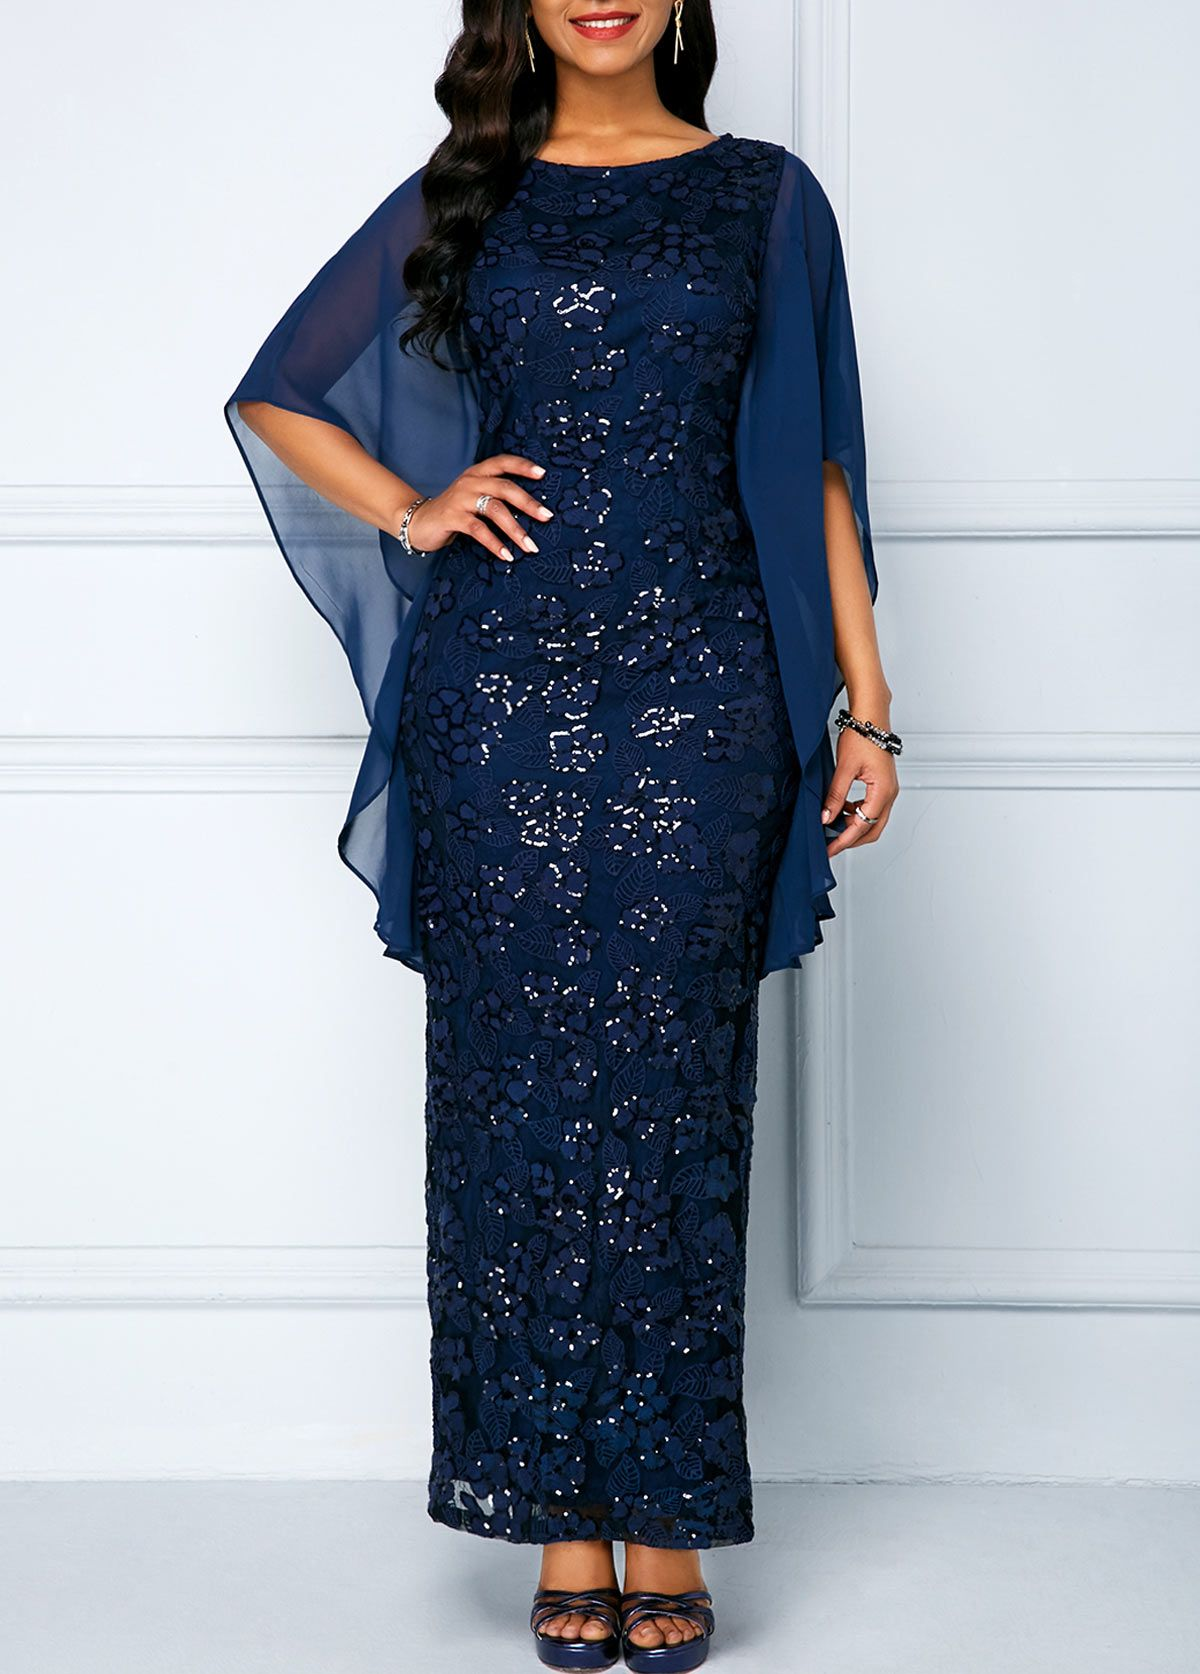 Sequined dress with chiffon sleeves